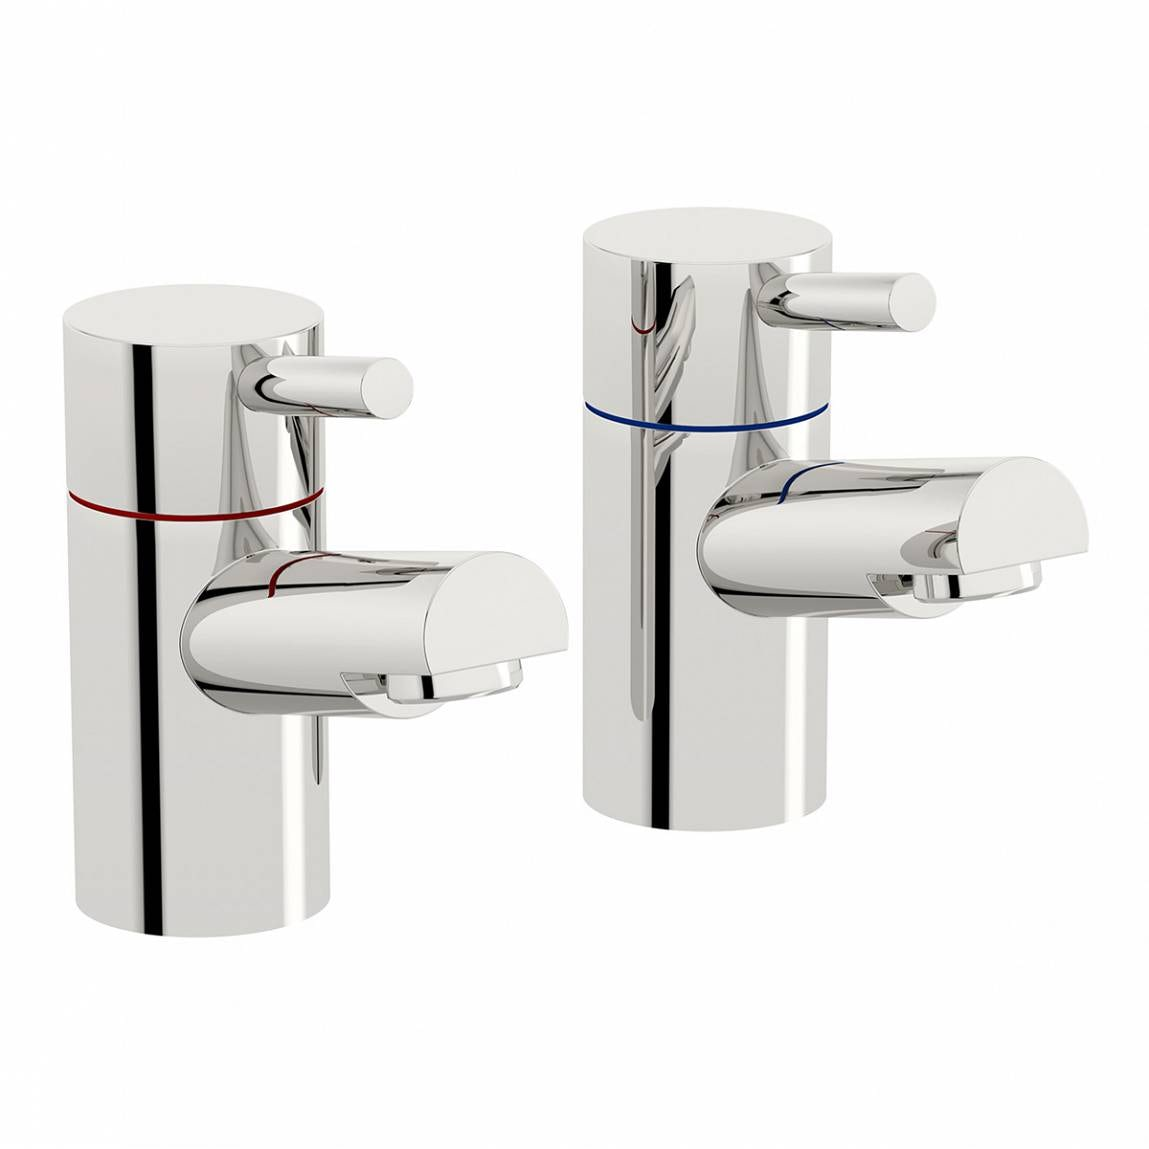 Orchard Matrix bath pillar taps